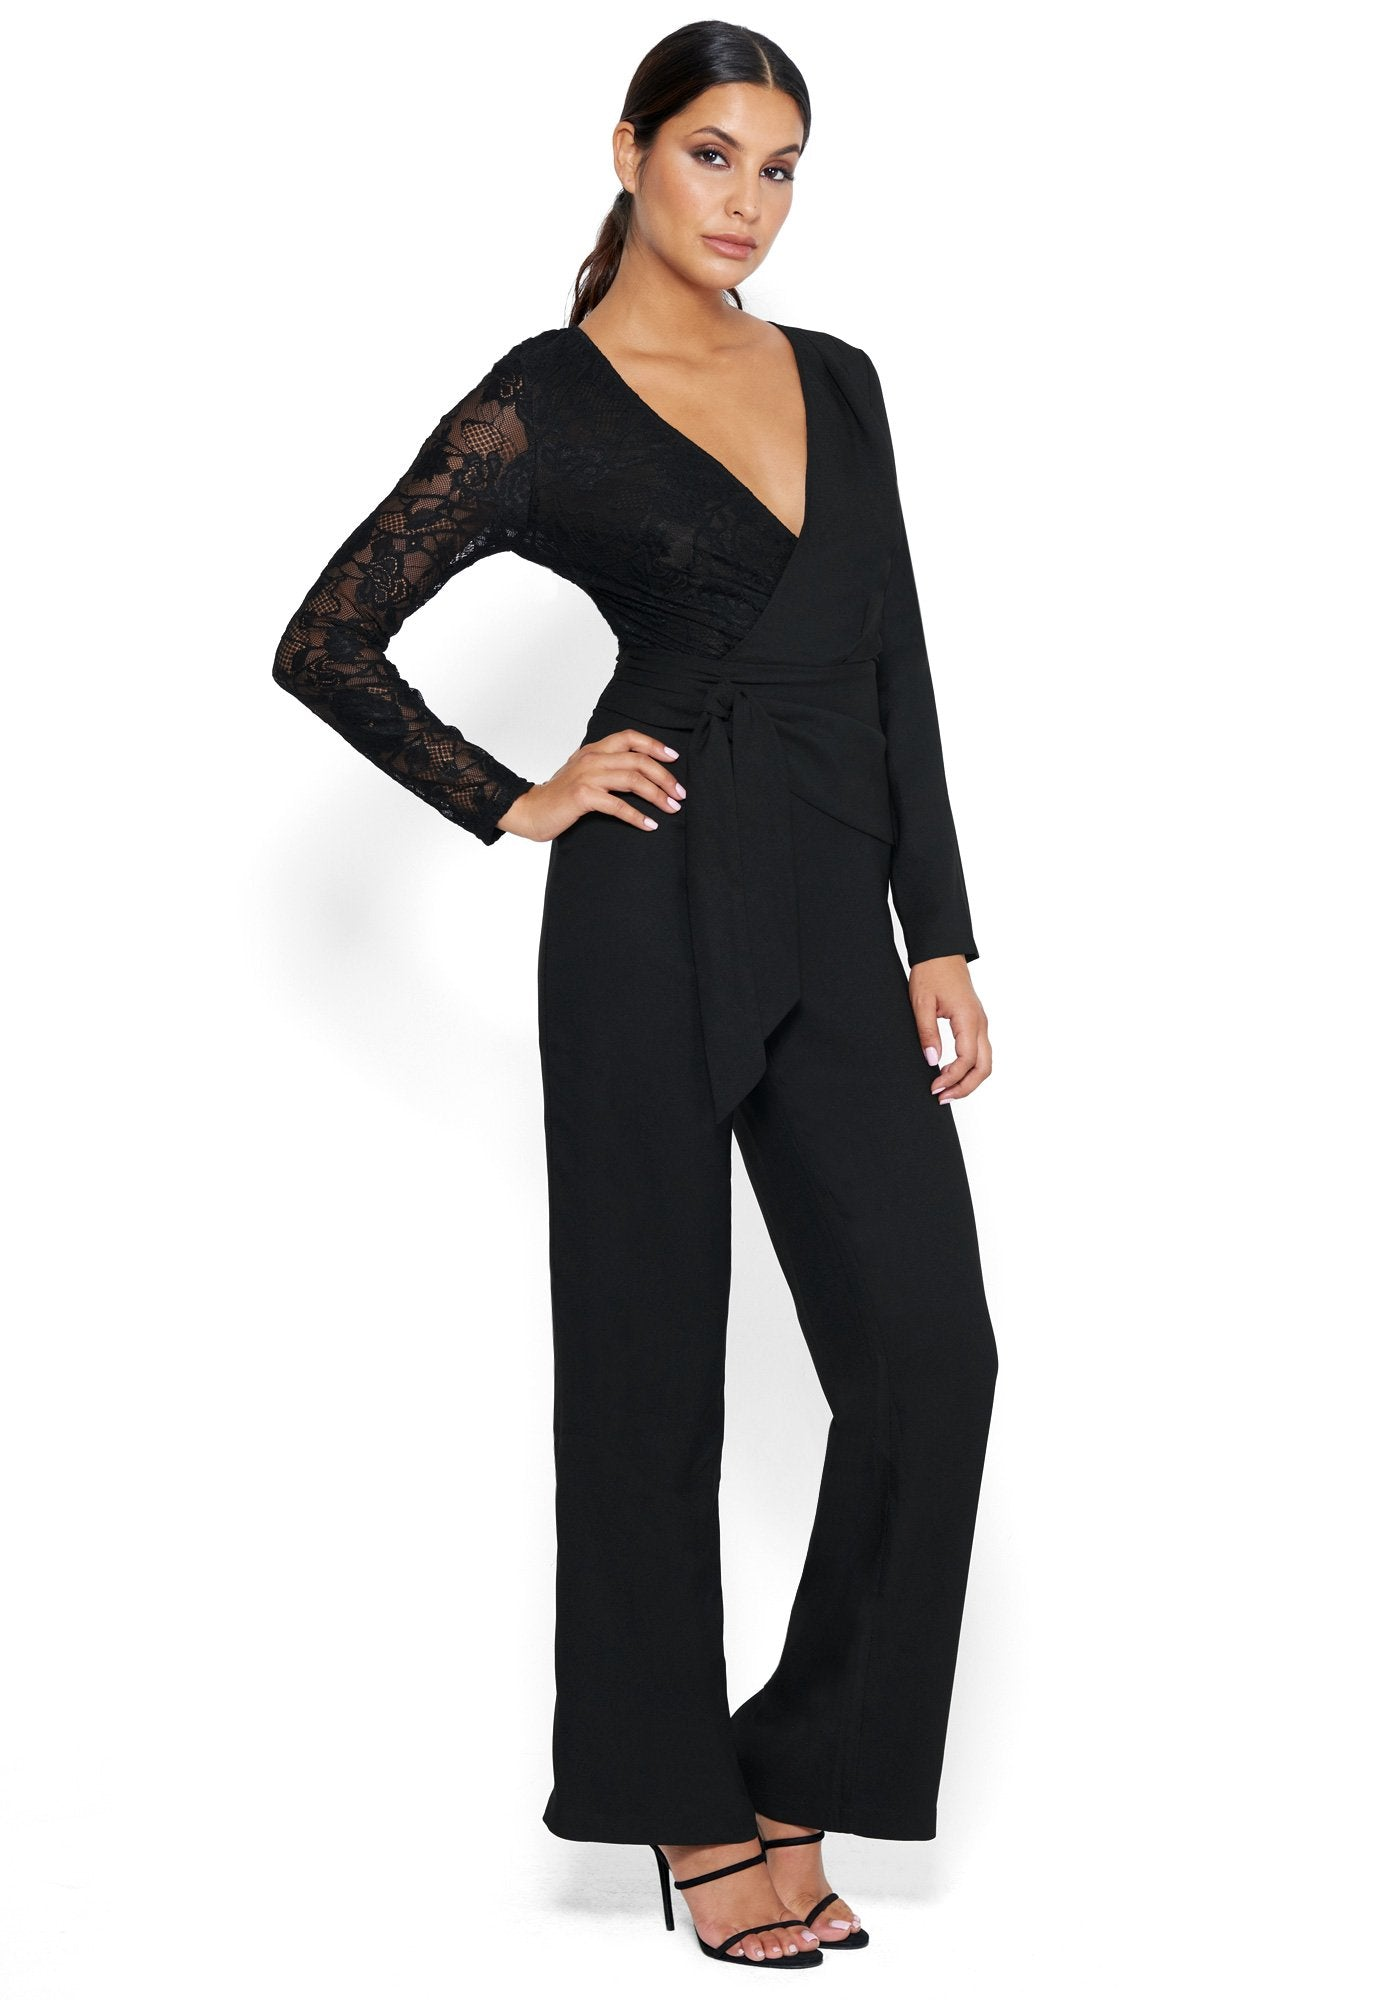 Bebe Women's Mixed Wrap Jumpsuit, Size 00 in Black Polyester/Nylon